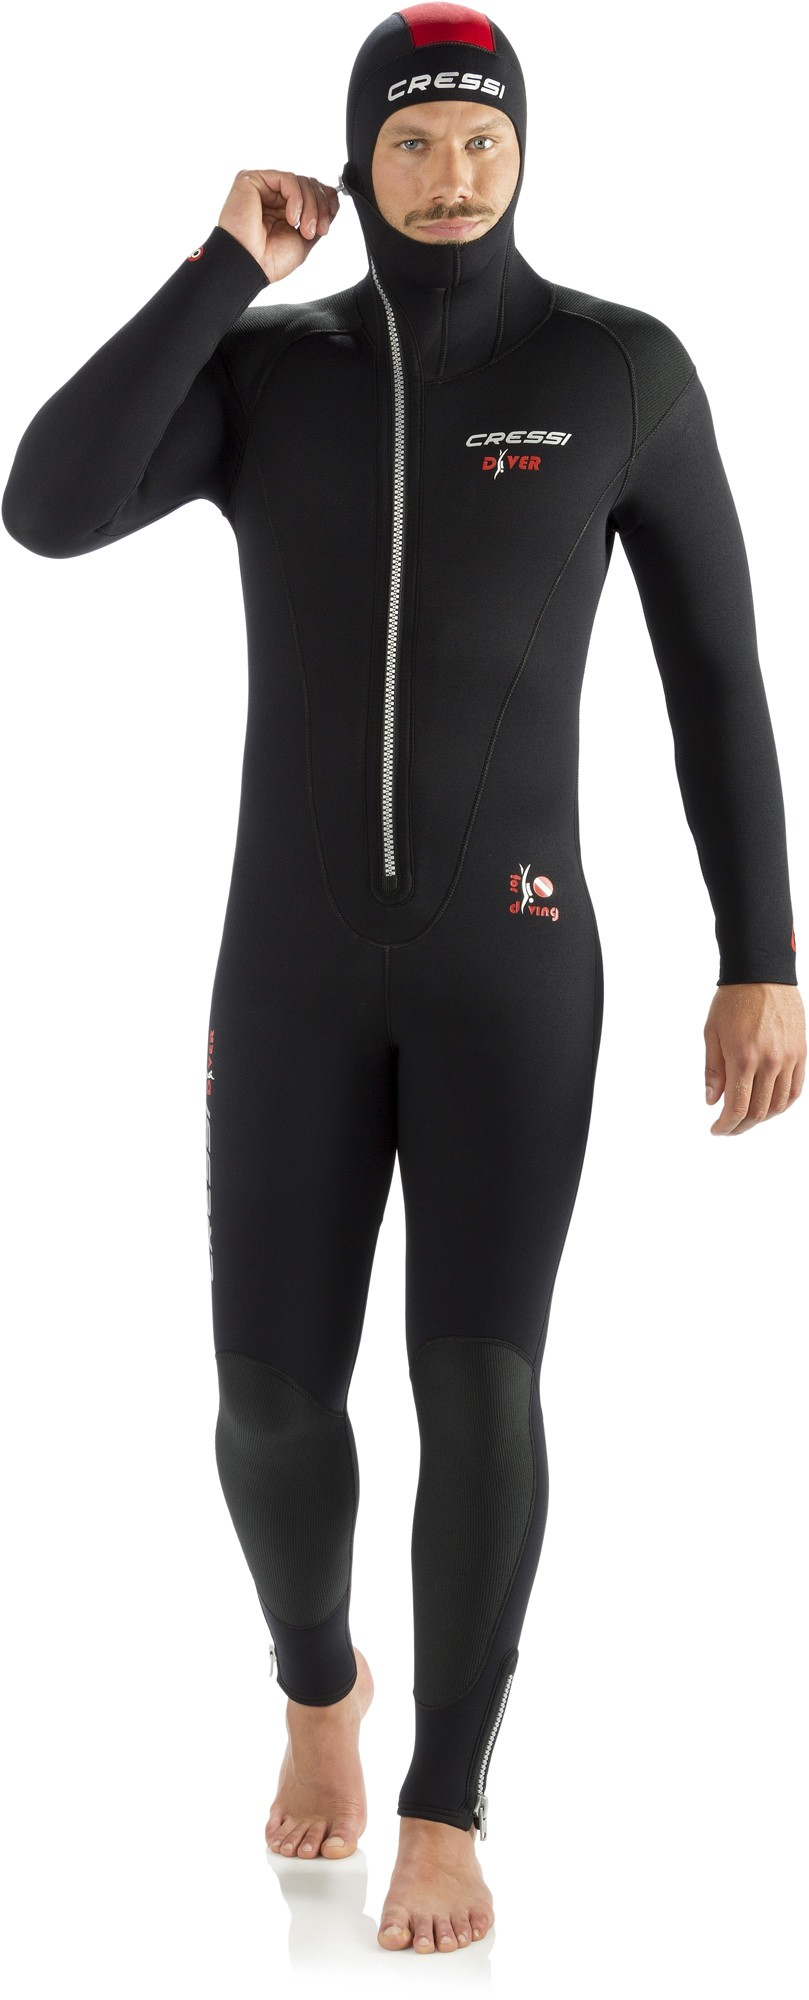 Diver wetsuit man 5 or 7 mm